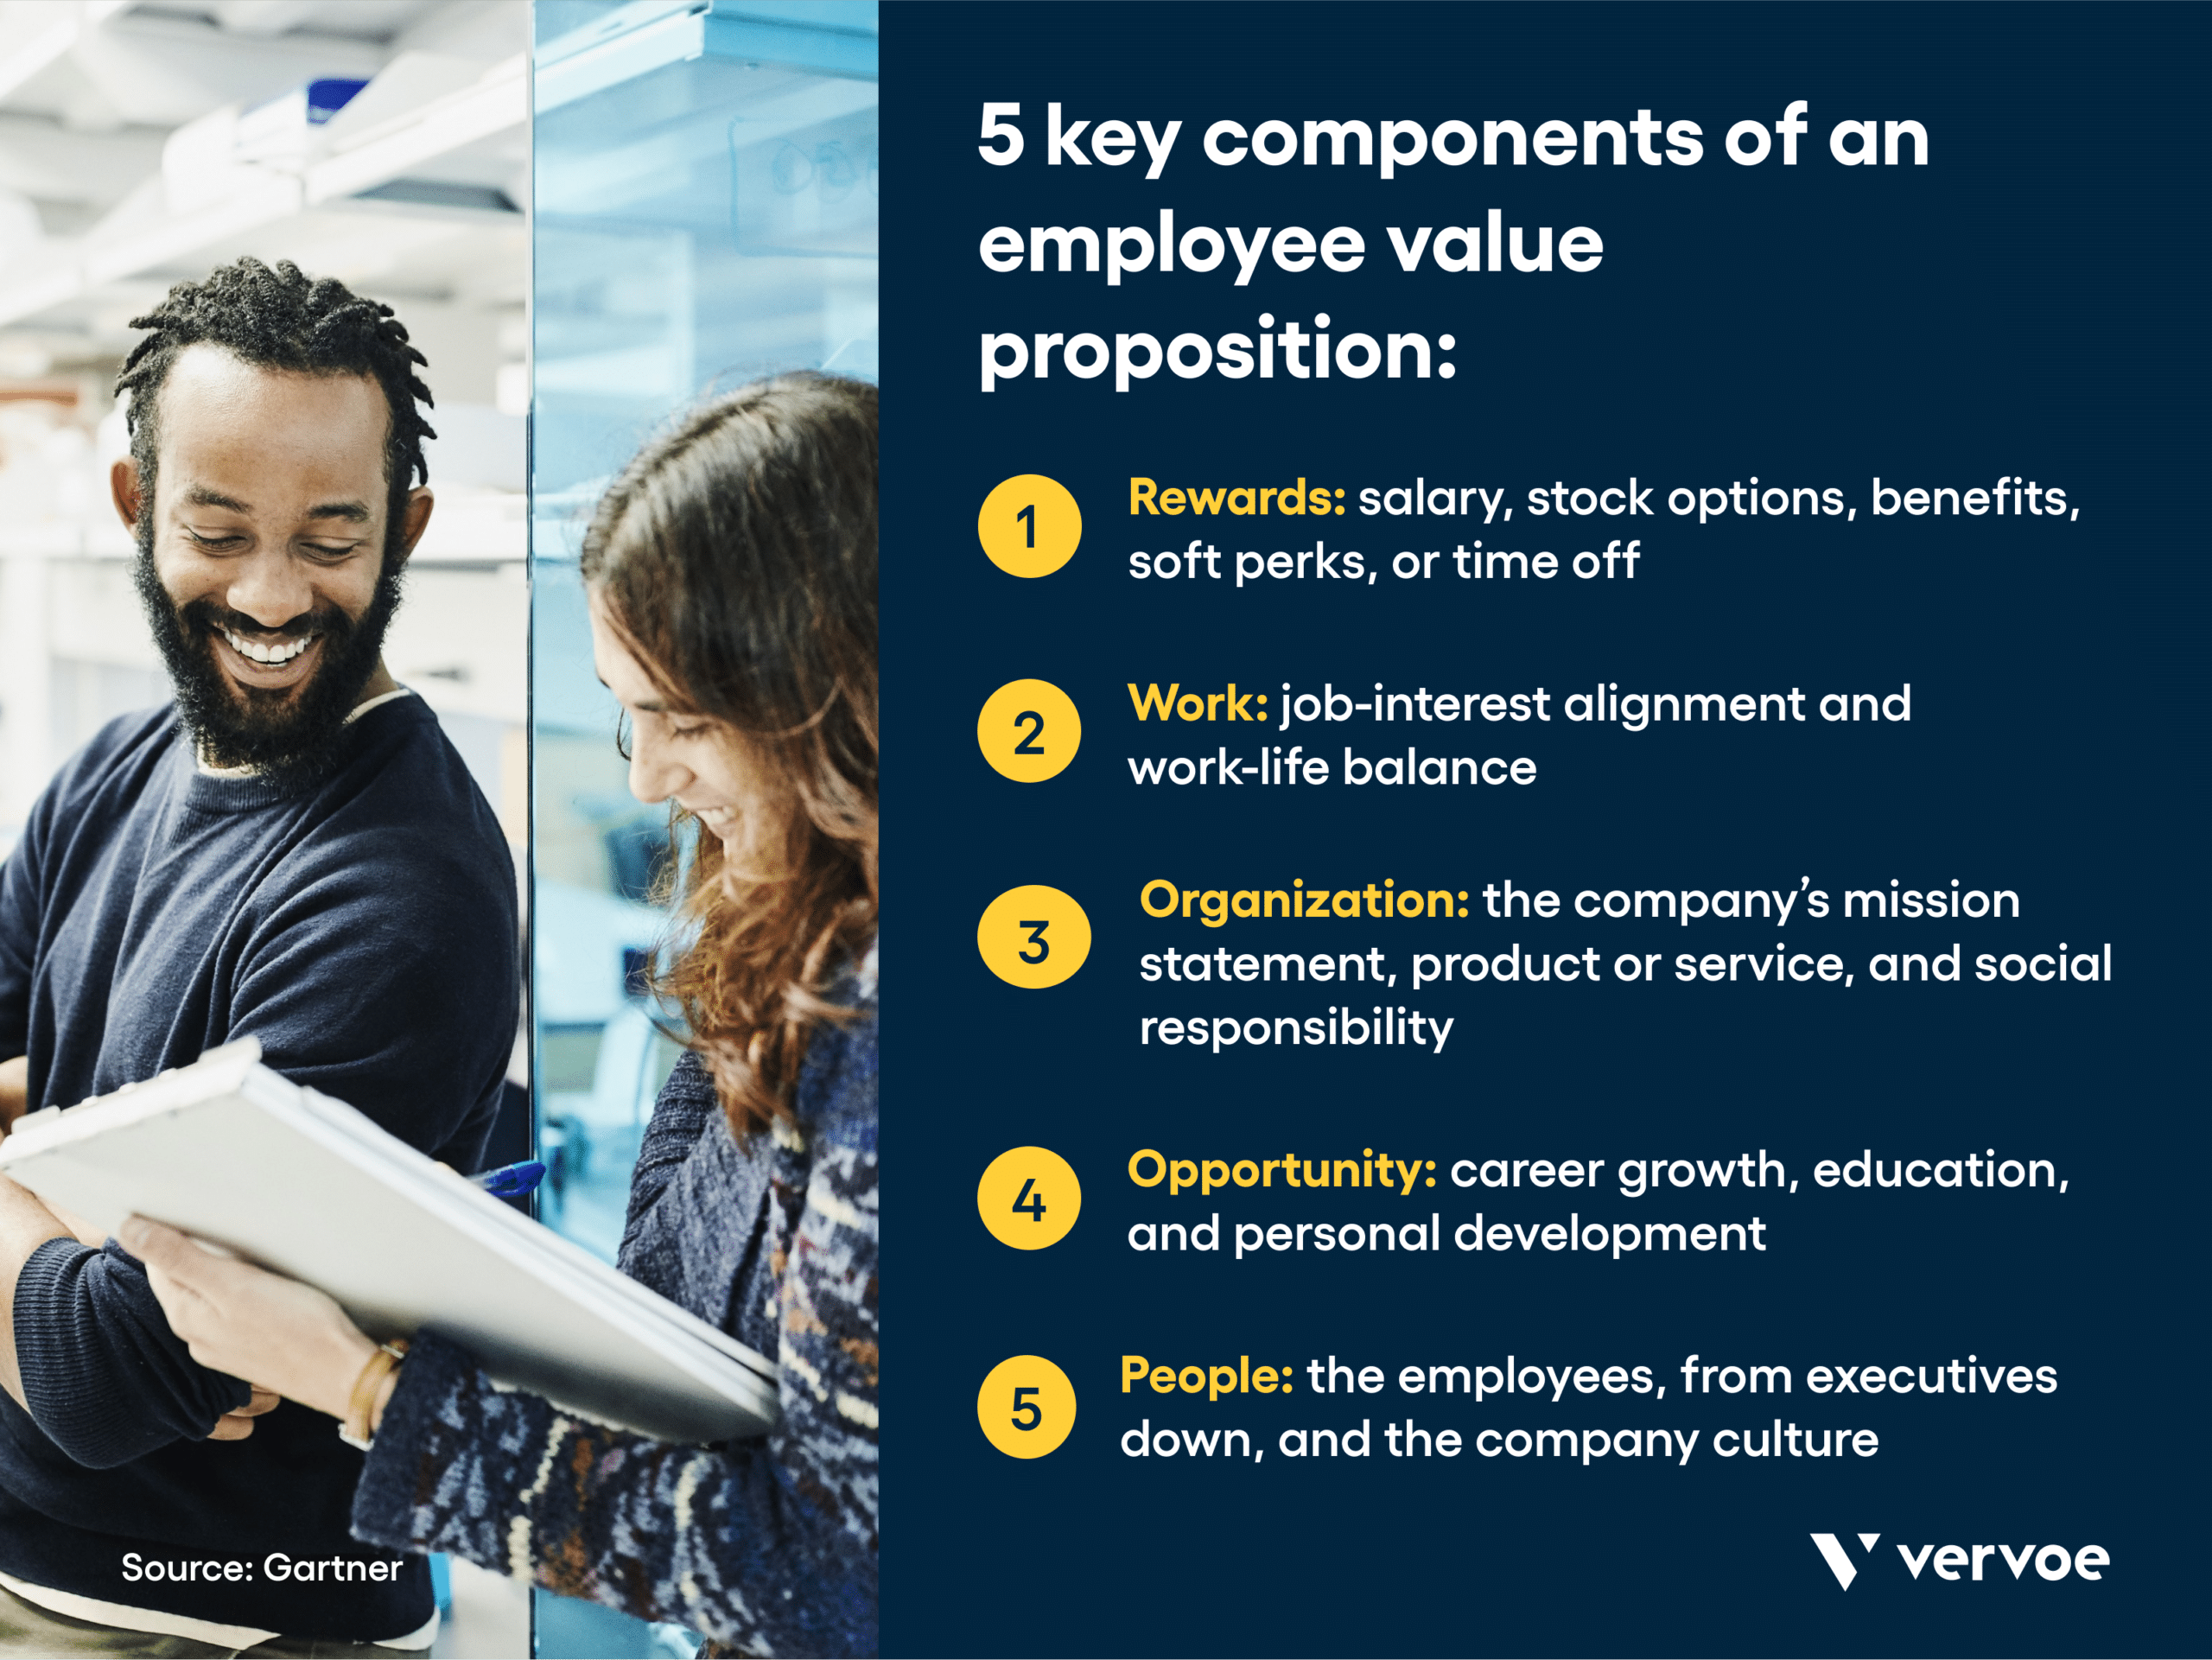 A graphic of 5 key components that frame an employee value proposition